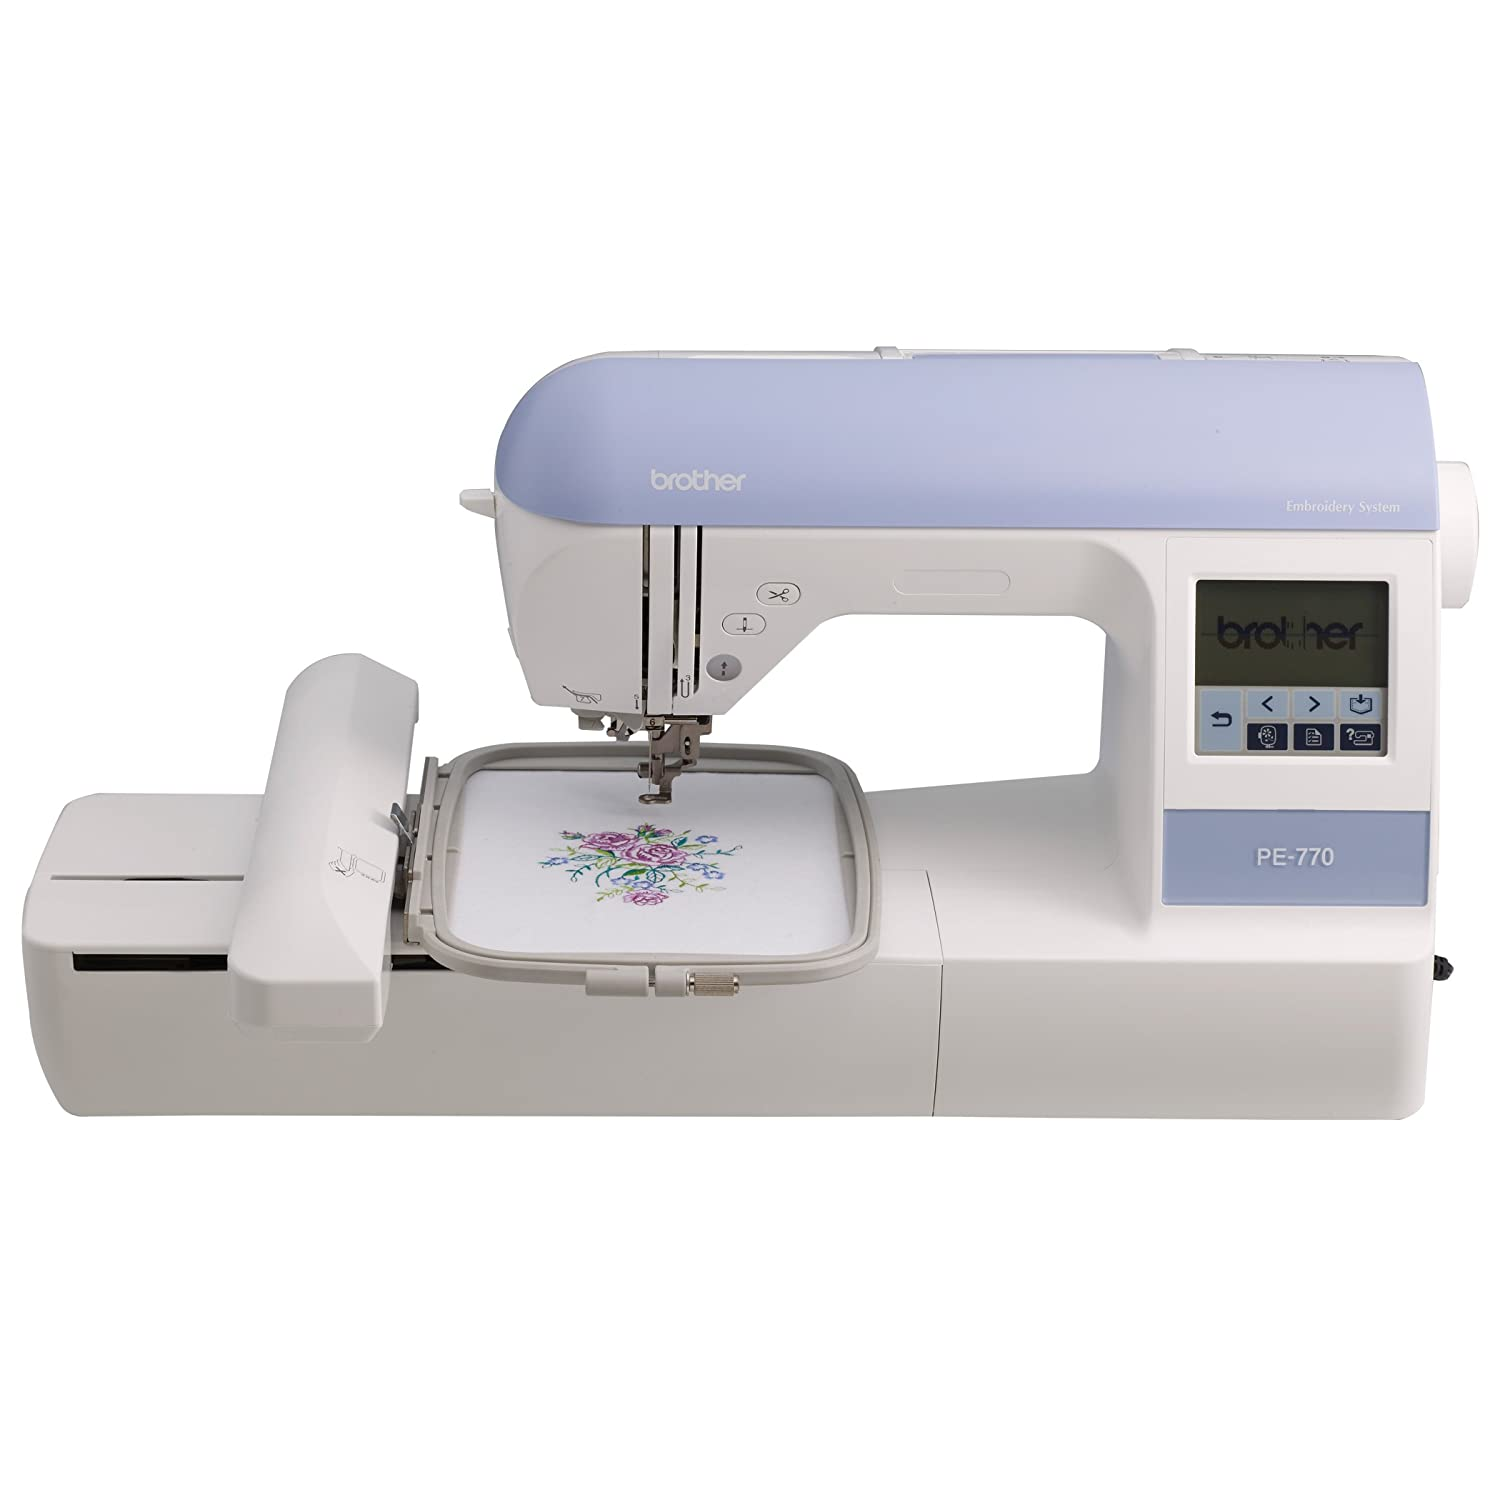 3. Brother PE770 5x7 inch Embroidery-only machine